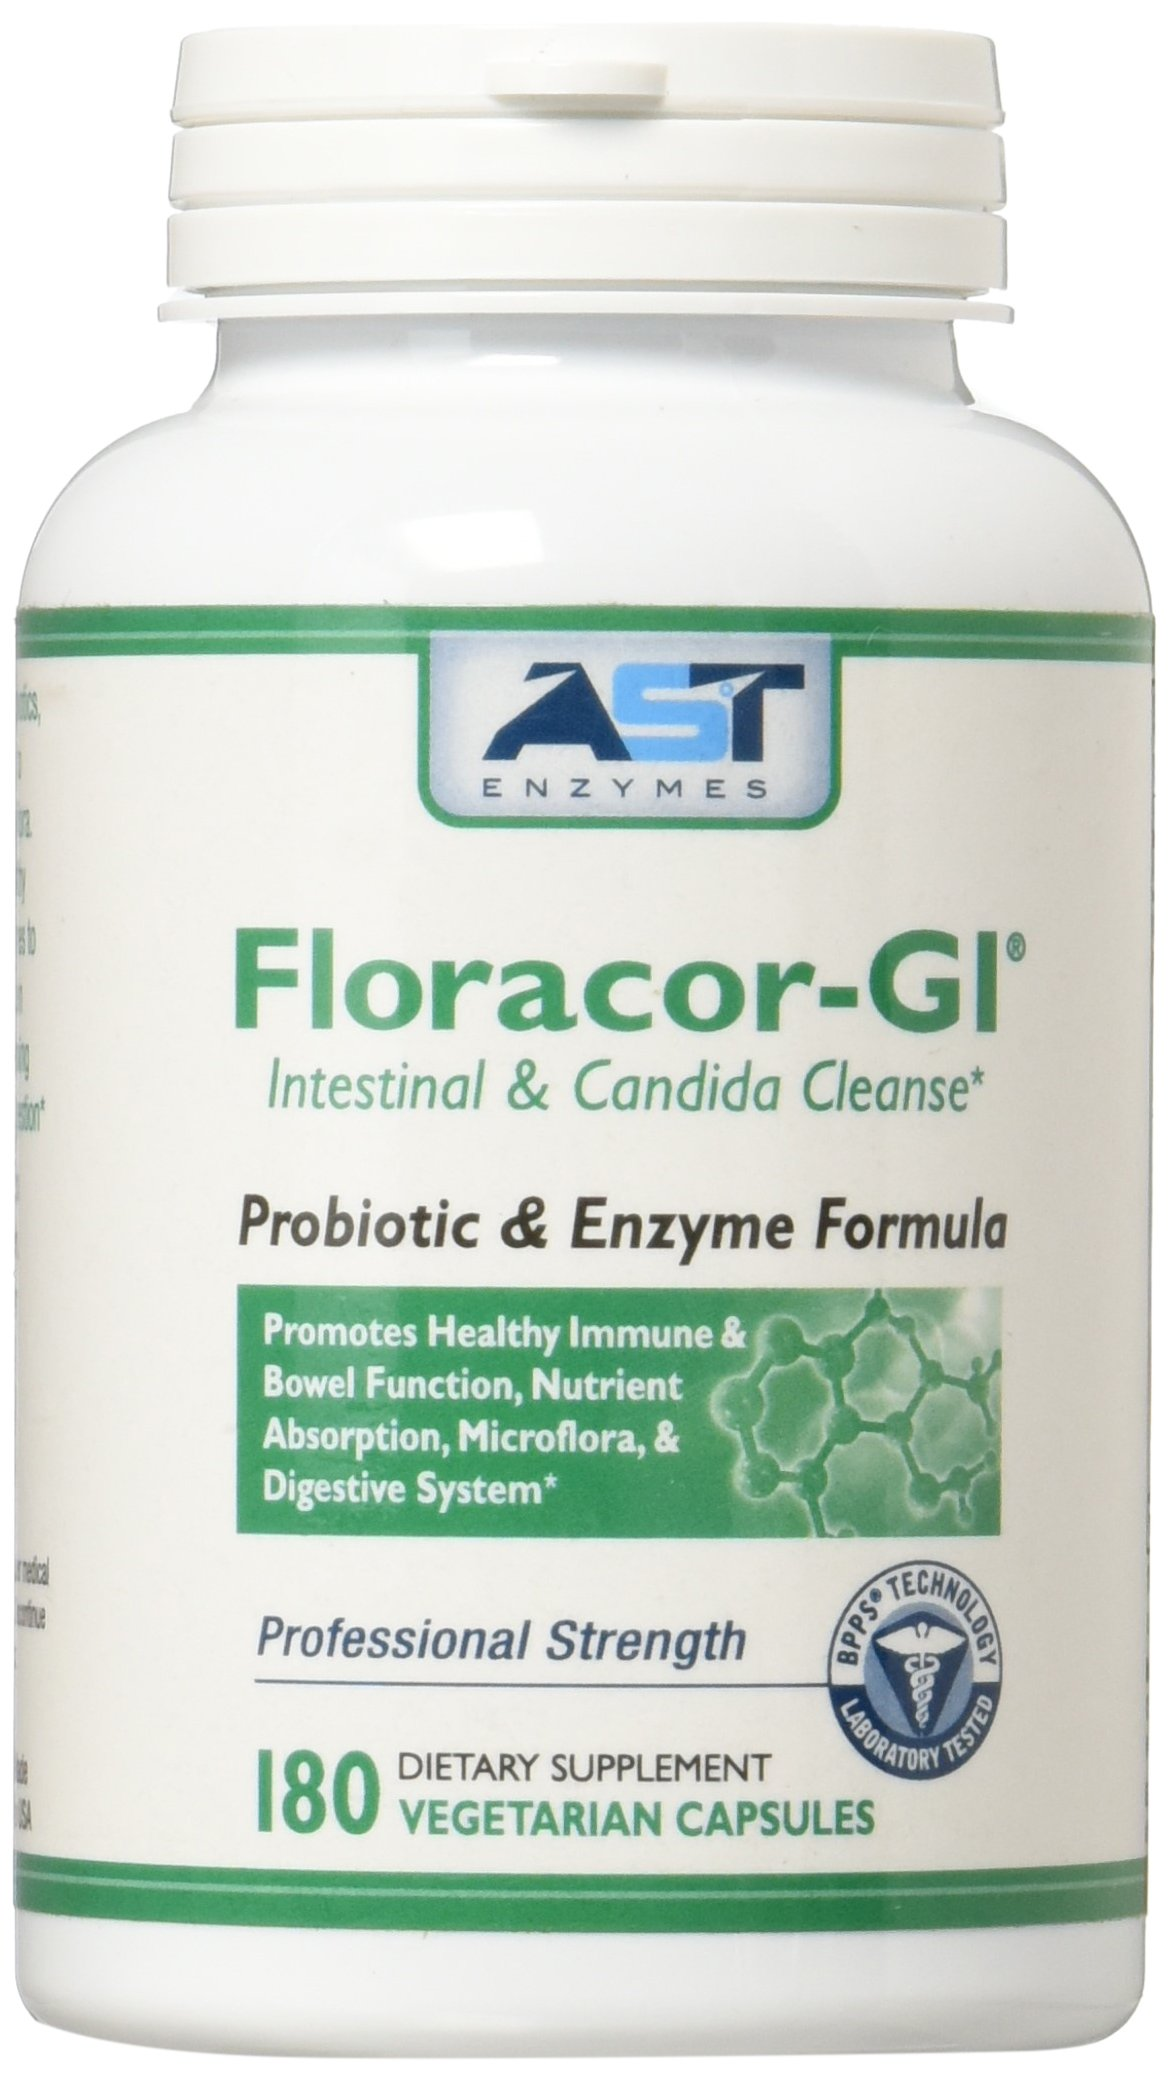 Floracor-GI – 180 Vegetarian Capsules – Intestinal and Candida Cleanse for Maximum Absorption – Natural Premium Probiotic, Prebiotic and Enzyme Formula – AST Enzymes